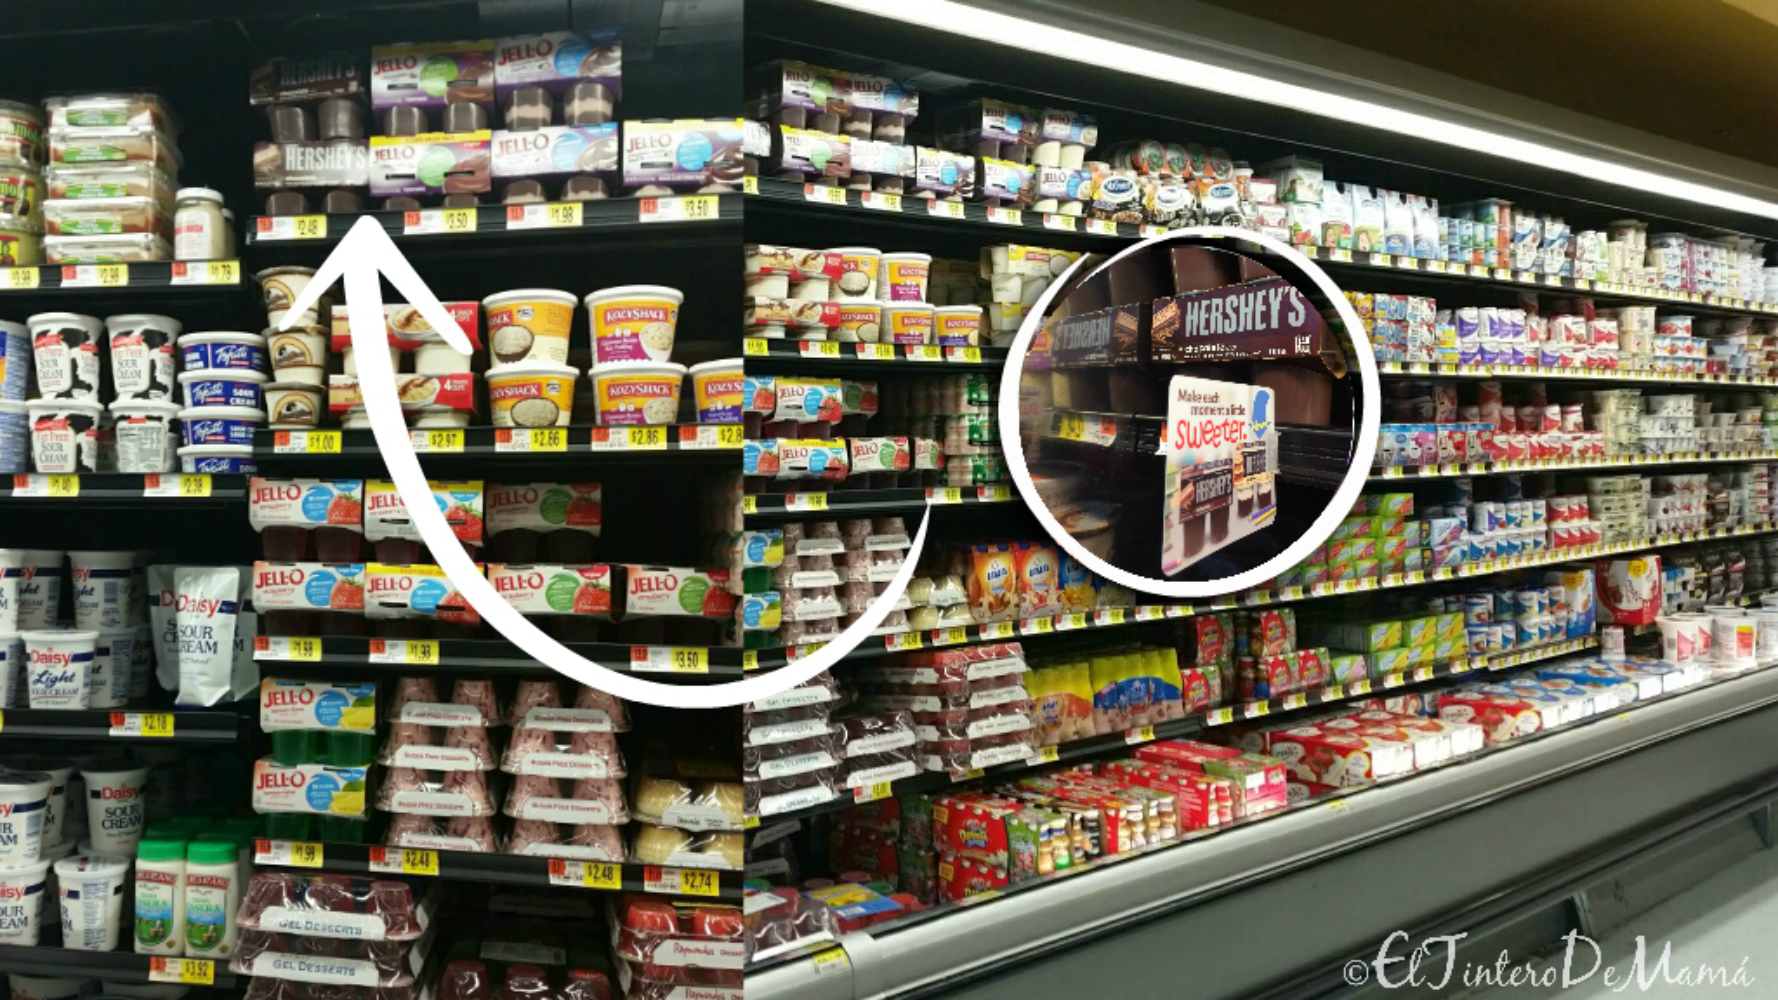 Tumbas_comestibles_con_hershey´s_pudding_walmart_store